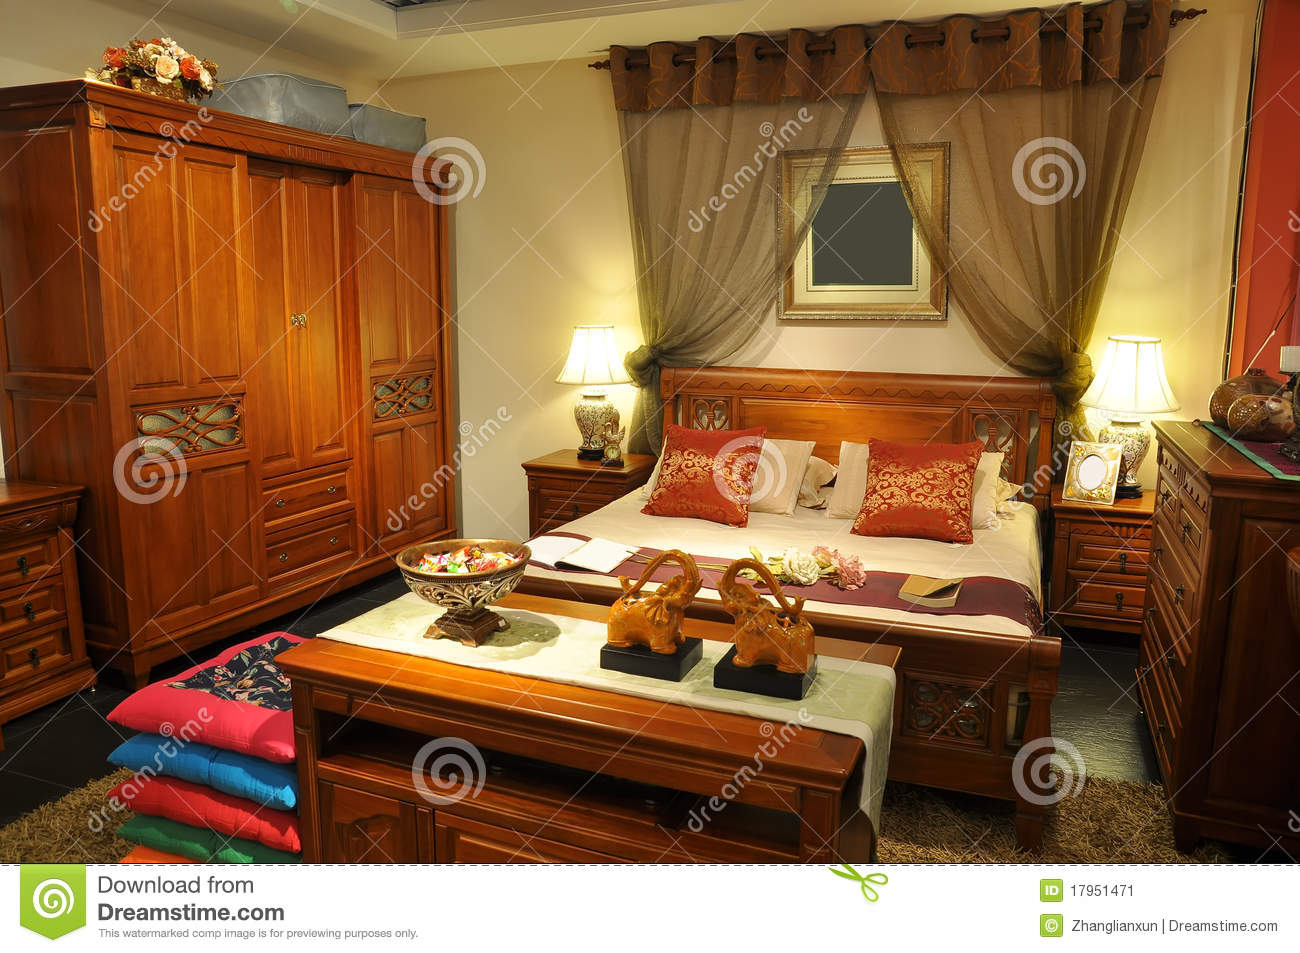 how to decorate a living room sofa table sleigh bed chinese traditional furniture stock image - image: 17951471